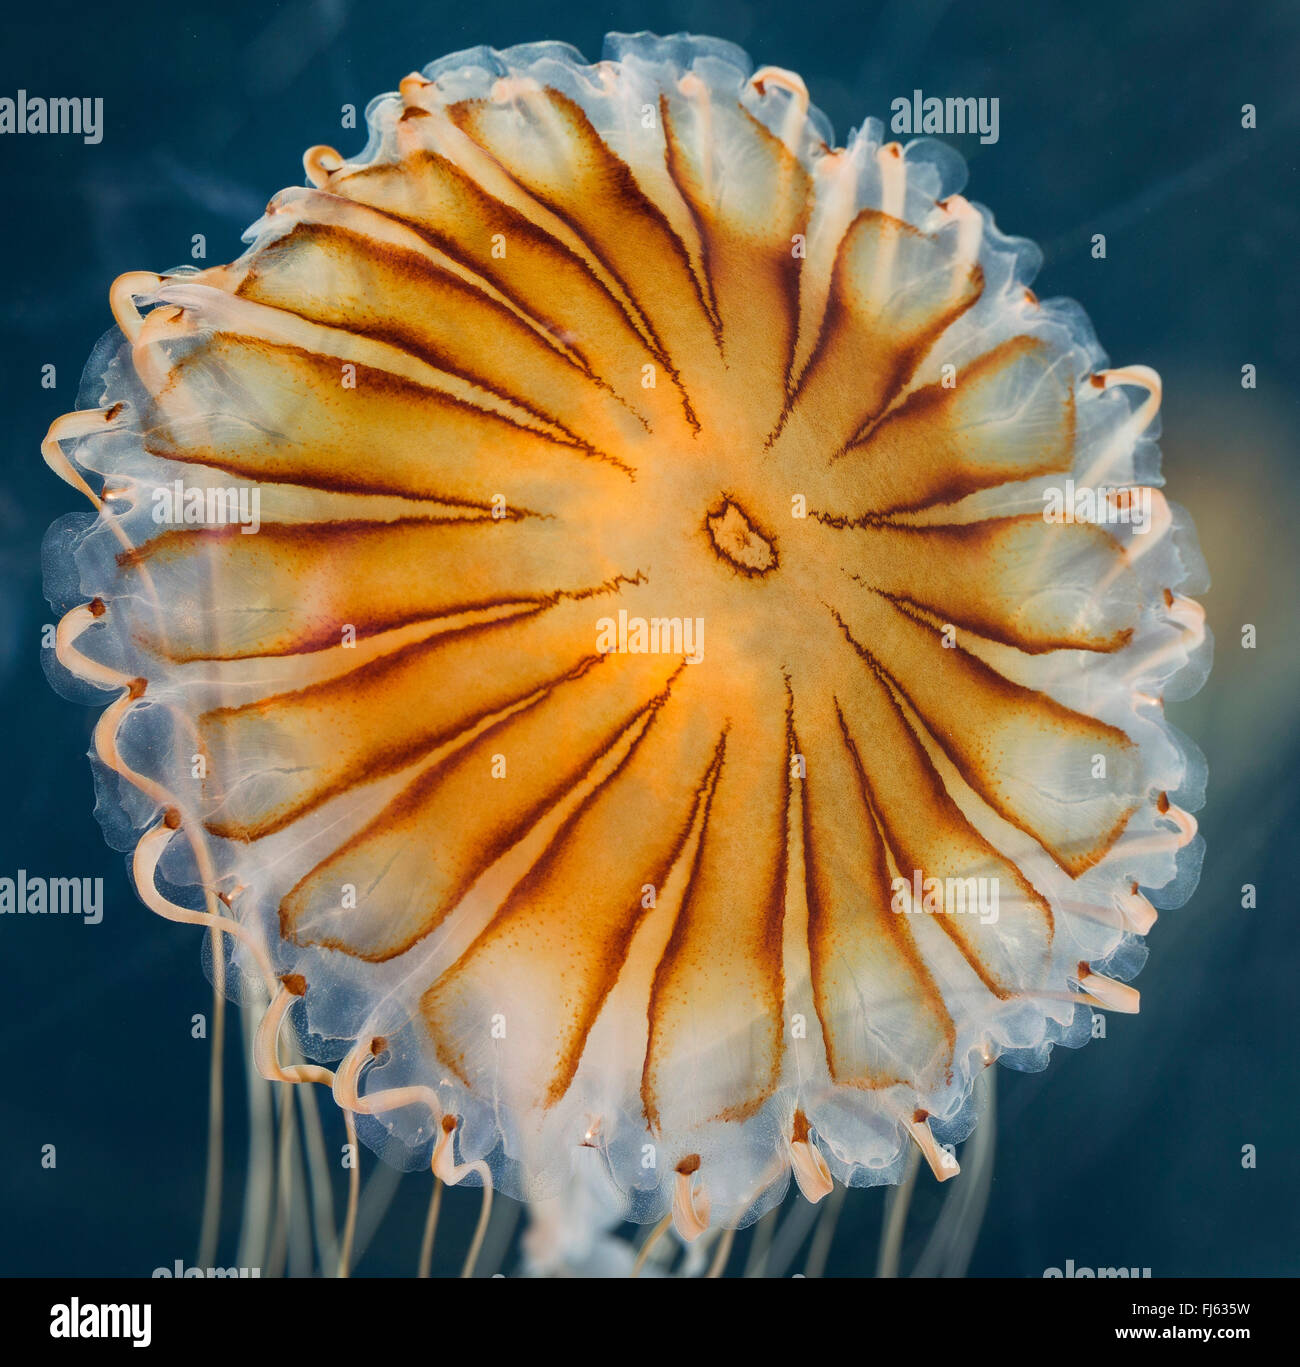 compass jellyfish, red-banded jellyfish (Chrysaora hysoscella), floating in water Stock Photo